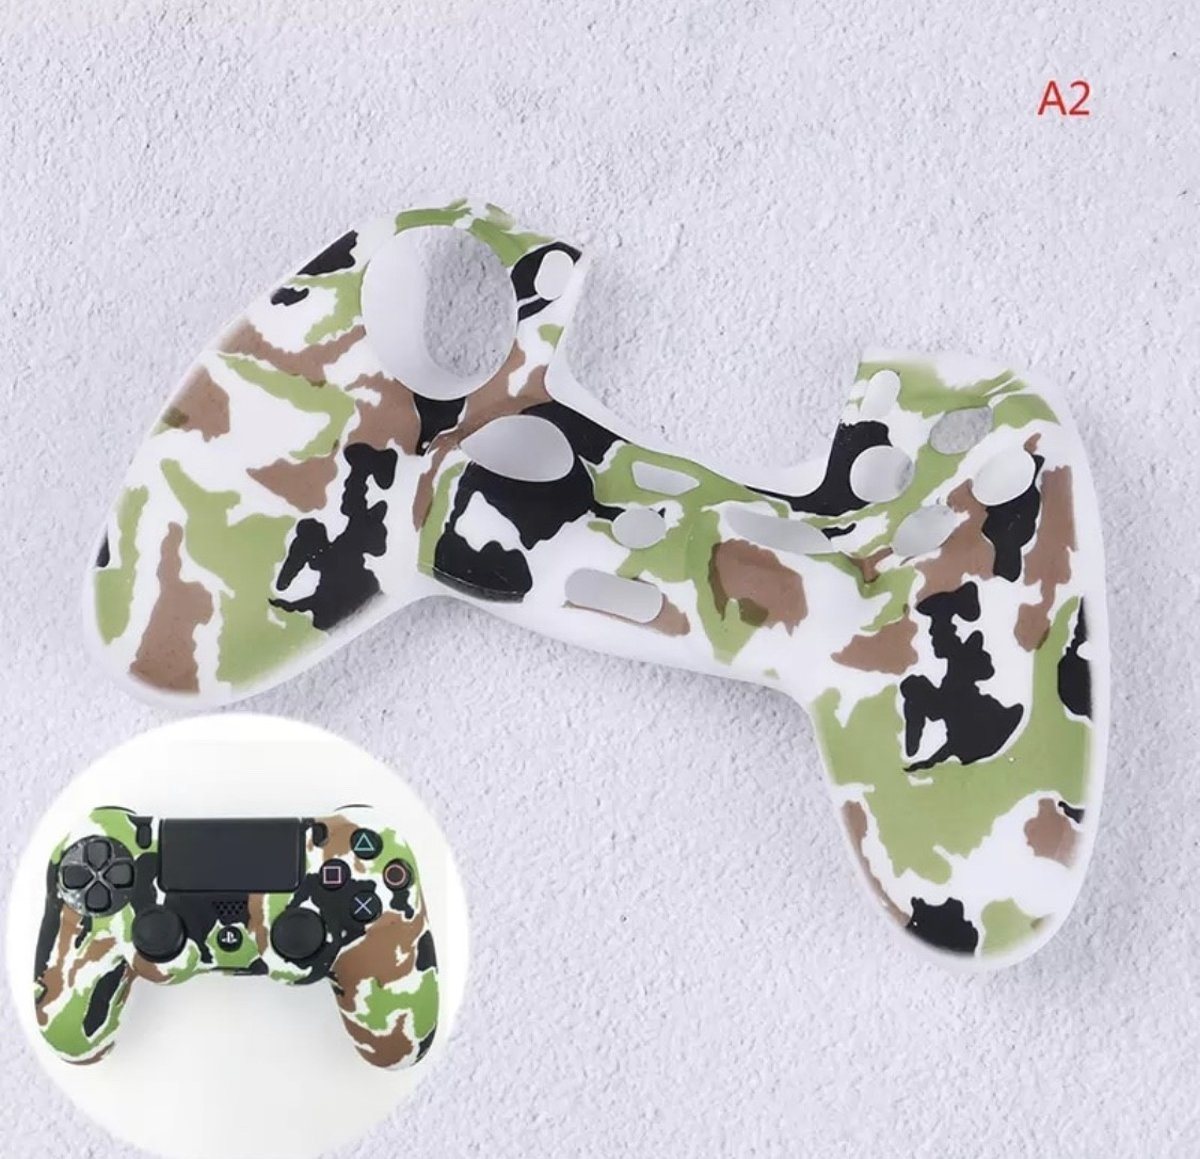 PS4 Controller Protector Siliconen - Camouflage Army Wit